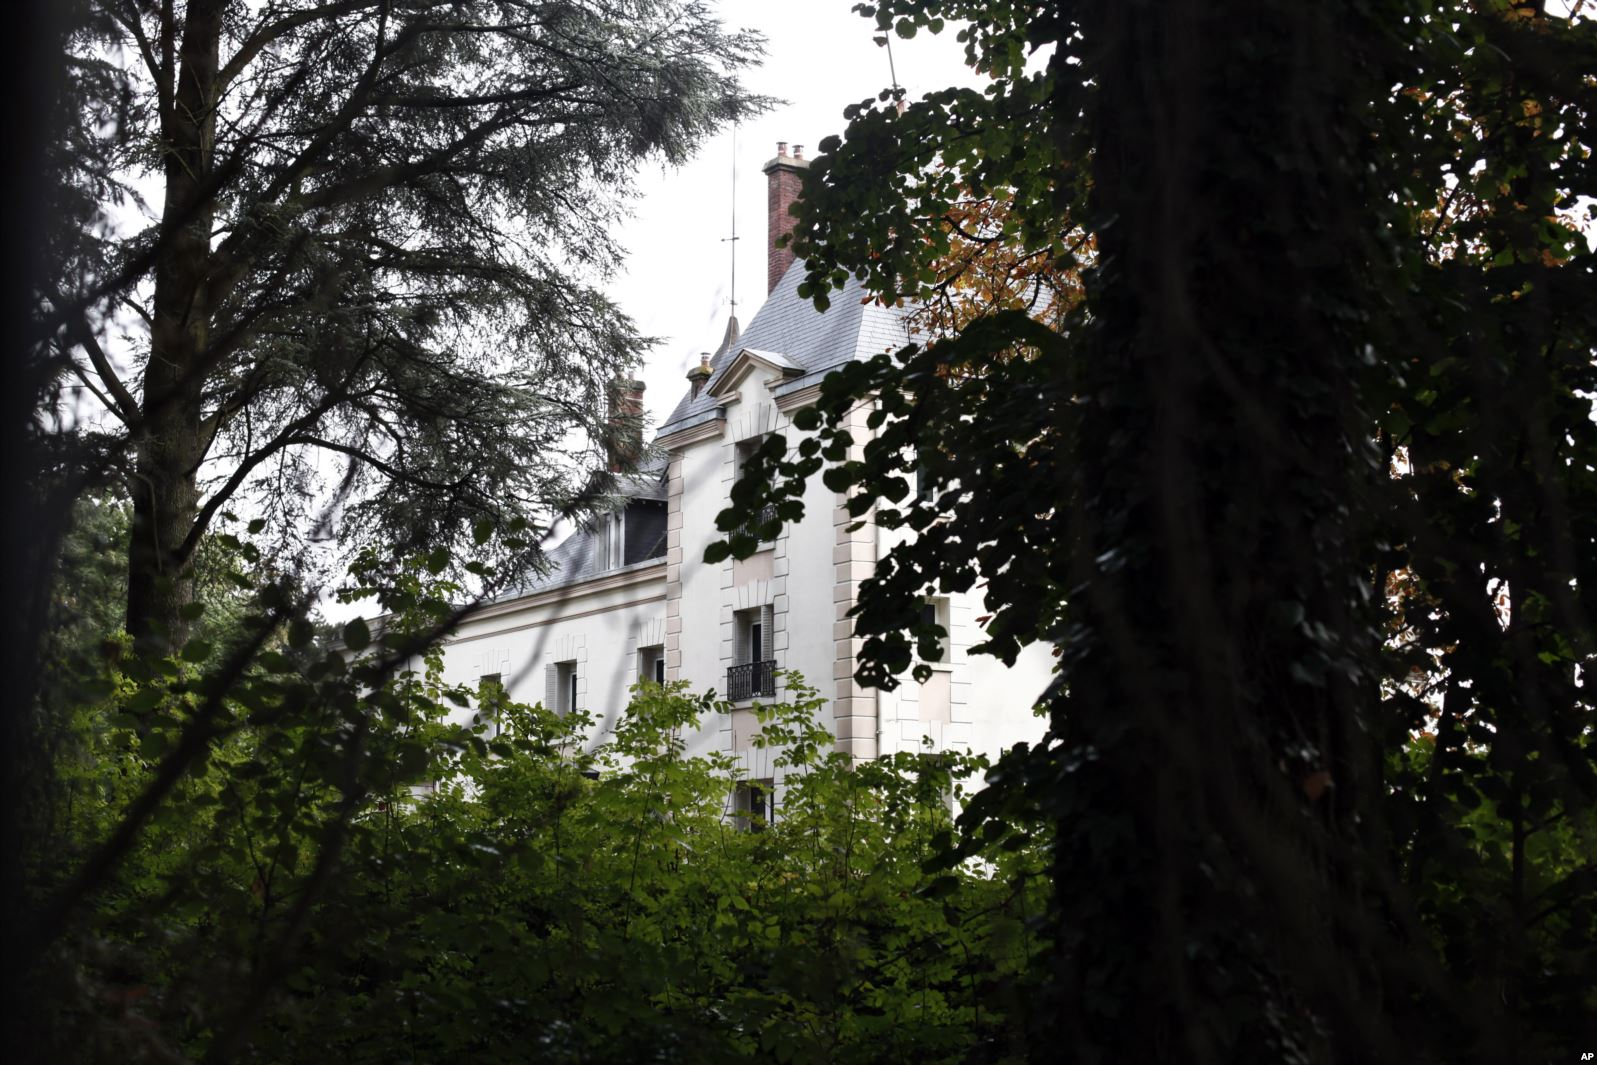 The manor of Bashar al-Assad's uncle, Rifaat al-Assad, is seen, in Bessancourt, north of Paris, Sept. 13, 2013. The manor whose real estate portfolio in the Paris region alone is estimated at Euros 160 million. A property in London, once owned by Rifaat al-Assad, was sold before it could be seized by authorities.